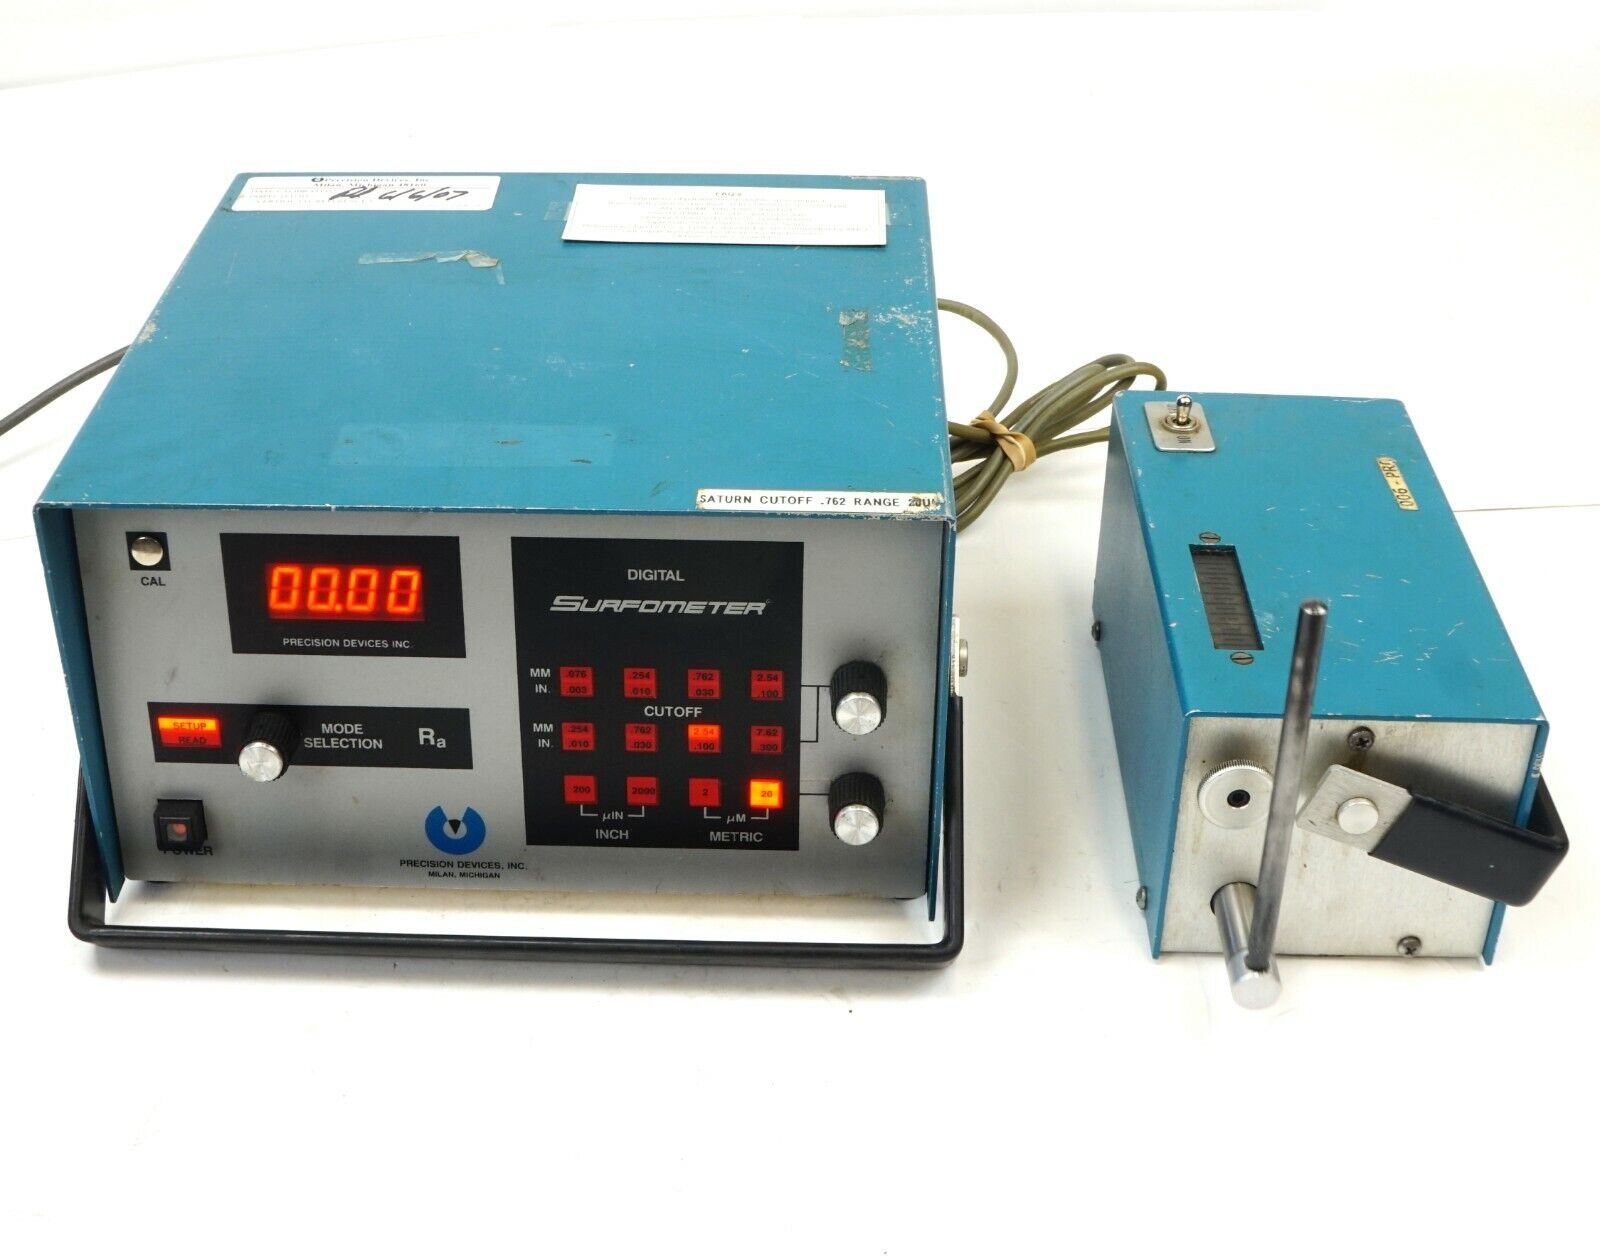 PDA-12-6 Digital Surfometer